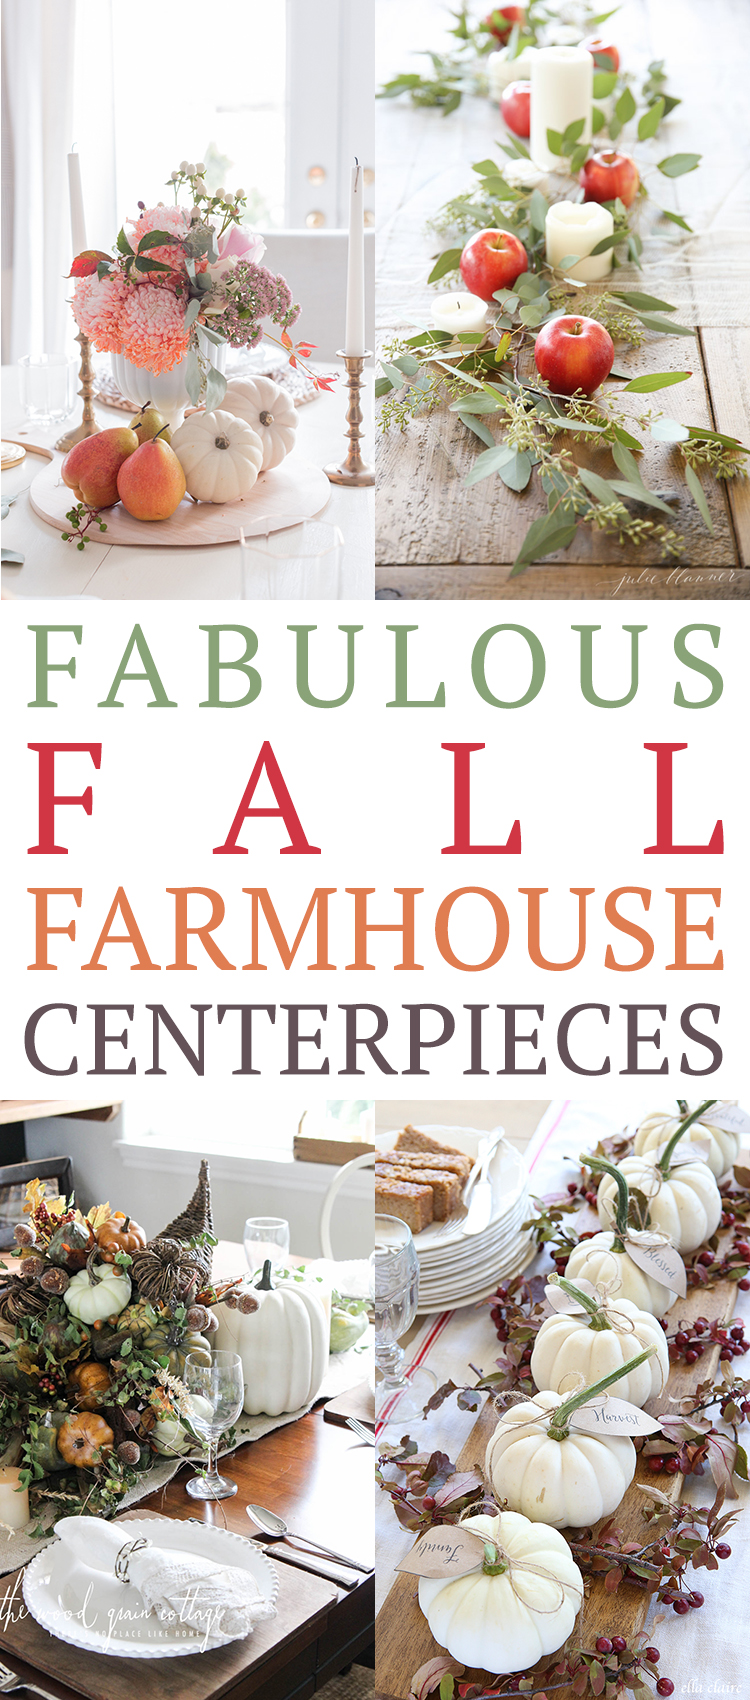 Fabulous Fall Farmhouse Centerpieces